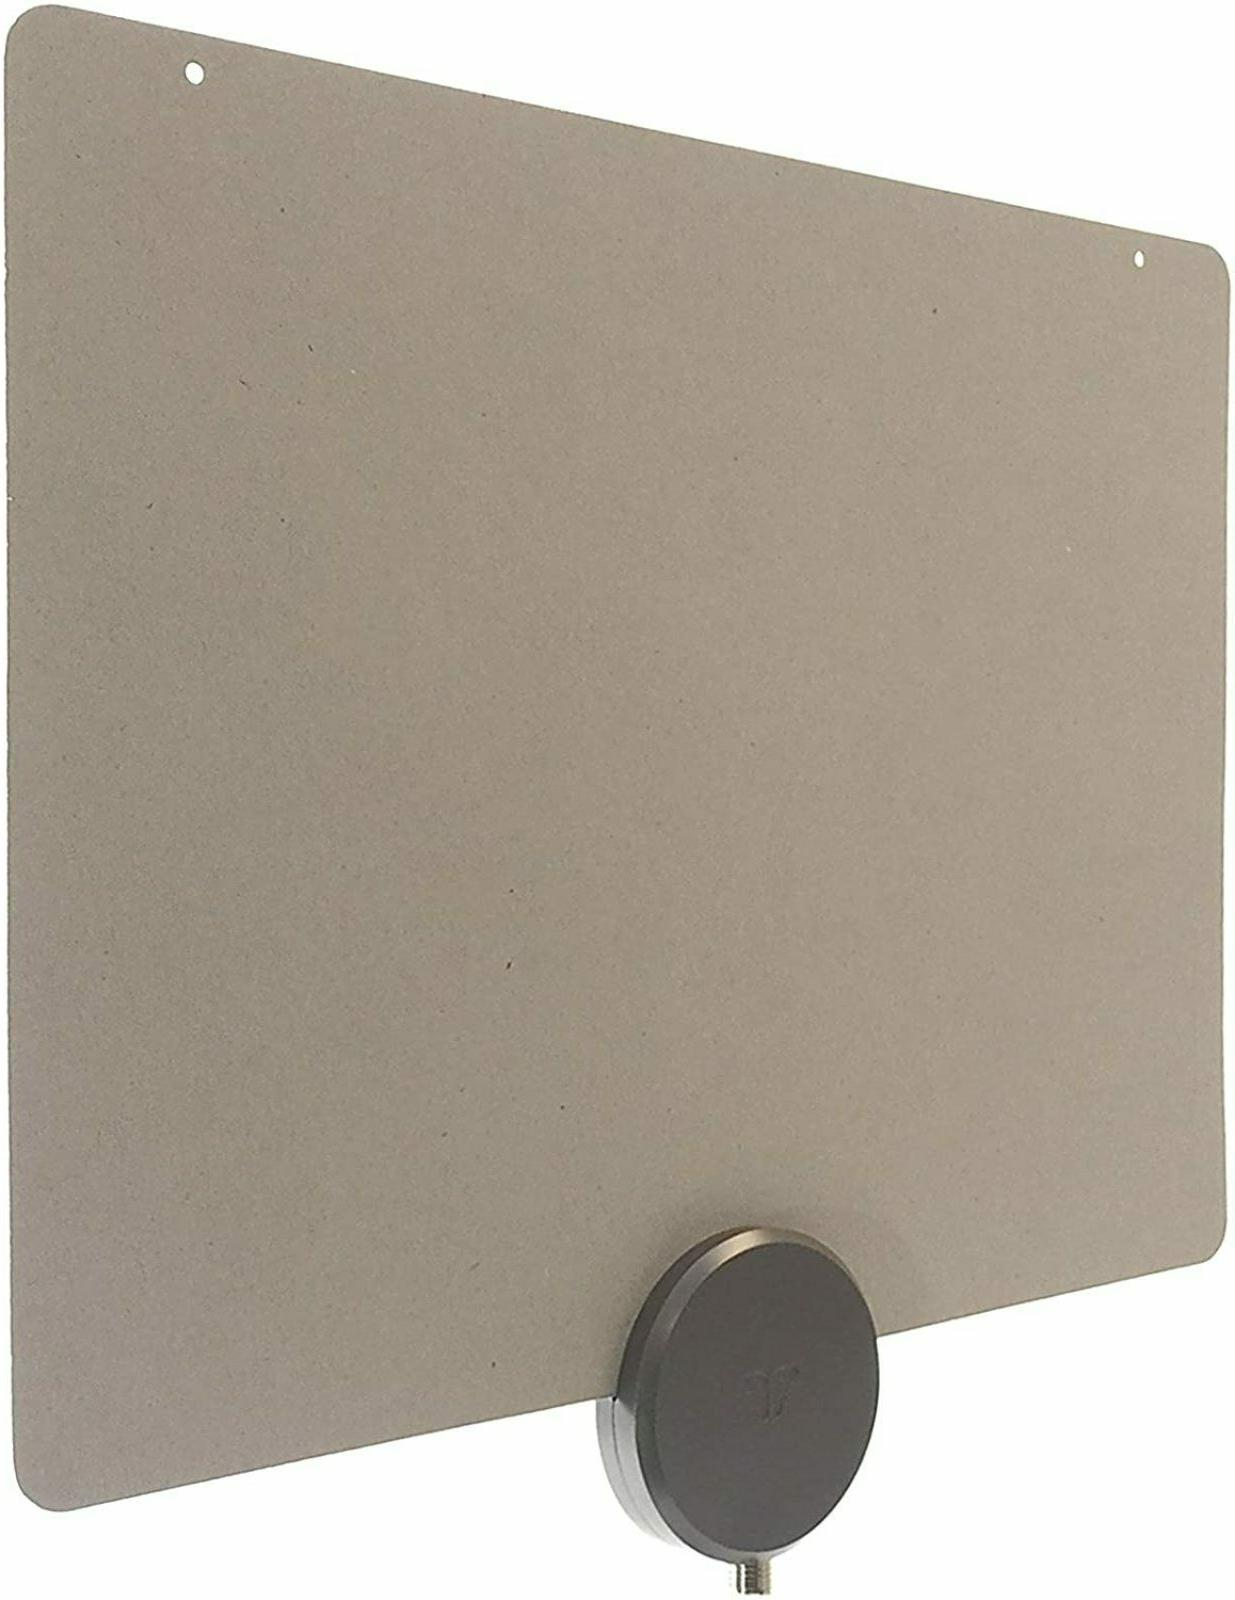 Mohu ReLeaf Indoor TV Antenna Made with Recycled Materials 4